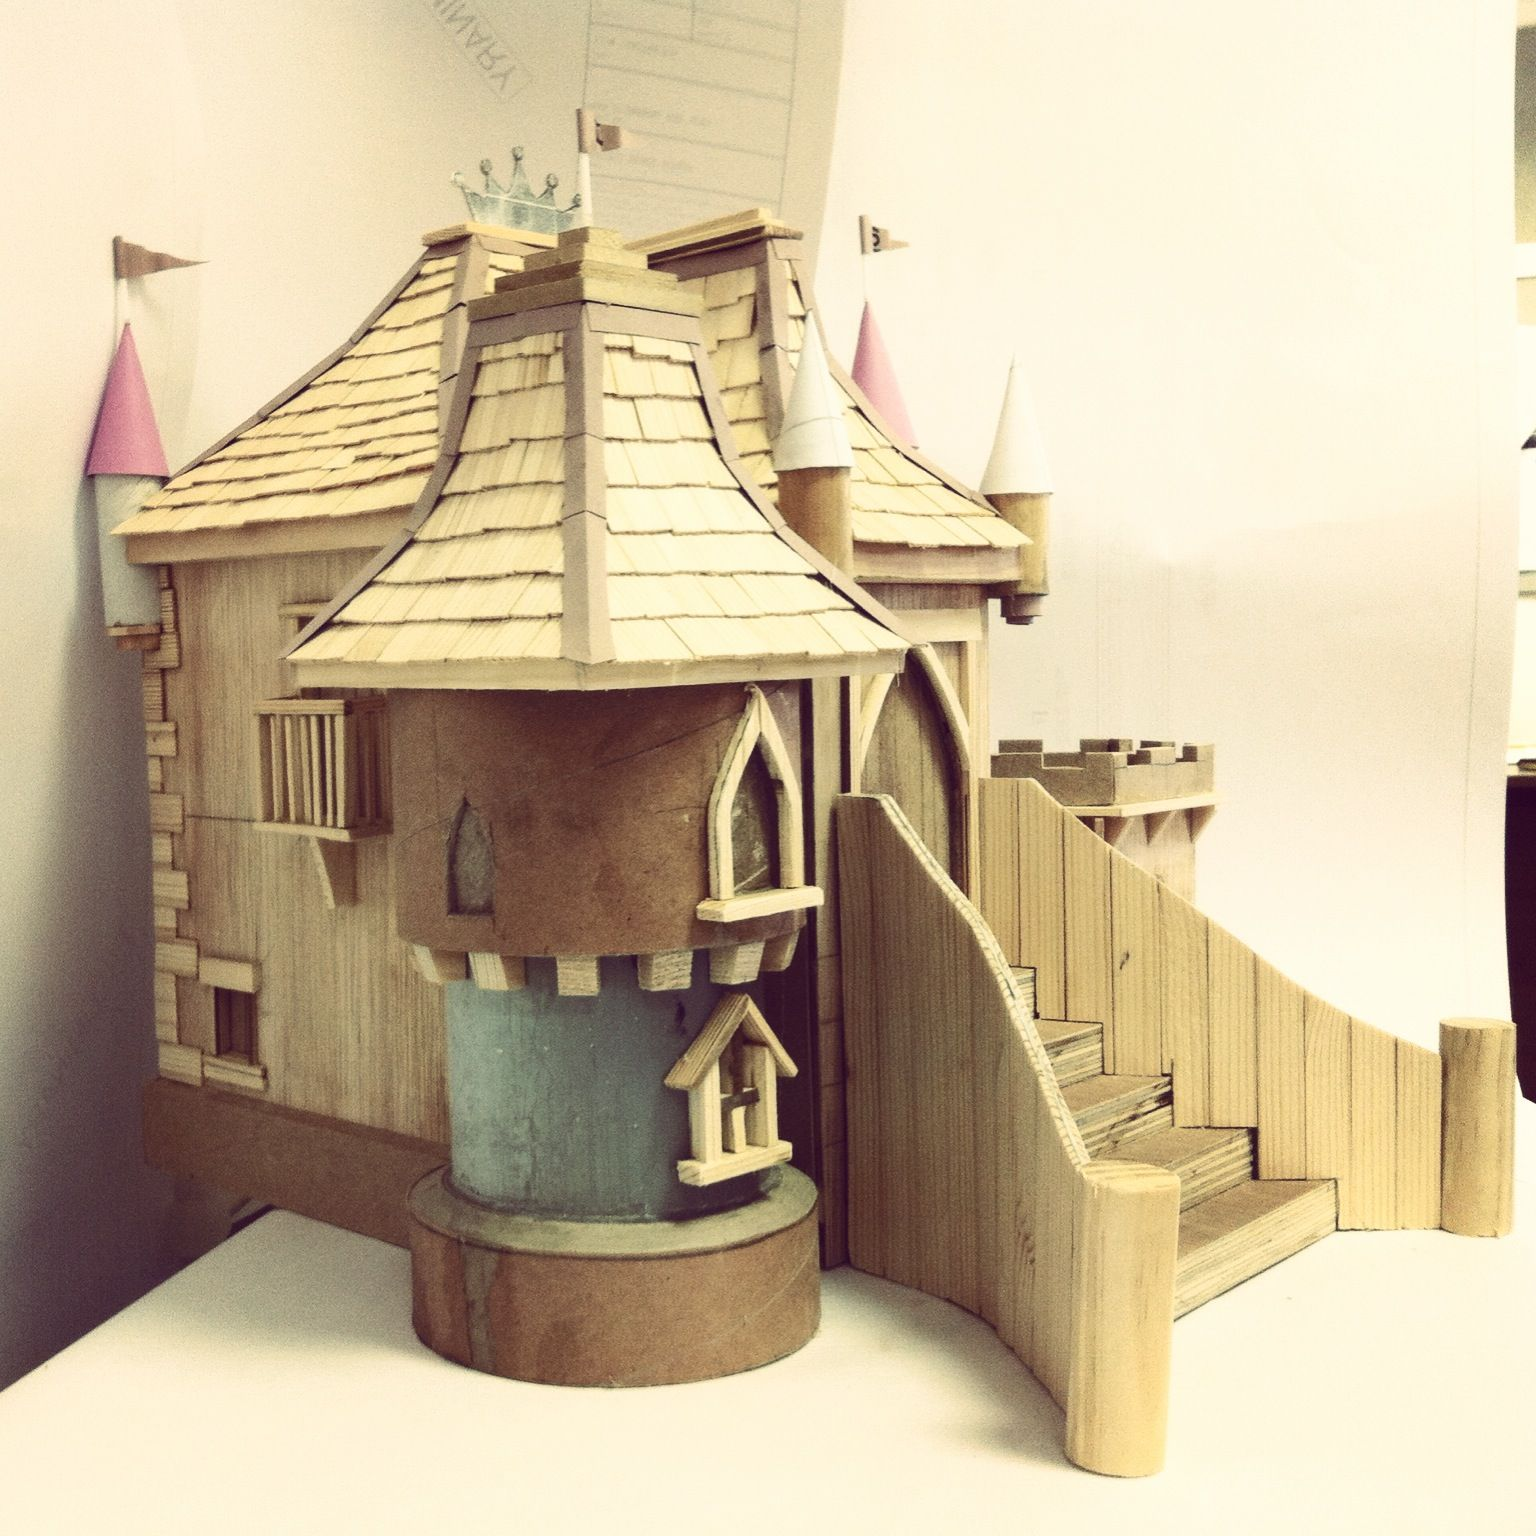 This Is The Model For Pretty Princess Castle Playhouse We Usually Build One For All Of Our Designs Play Houses Play House Castle Playhouse